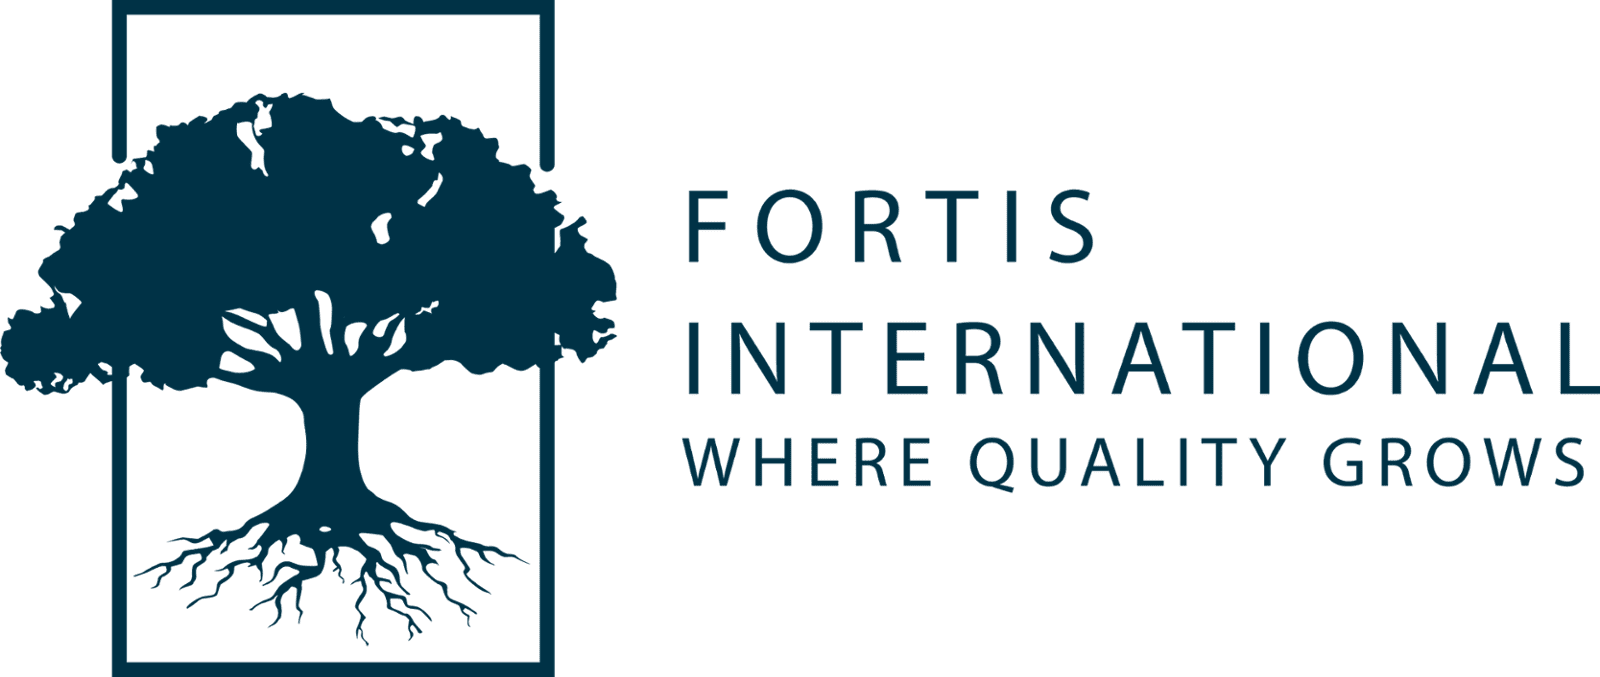 Fortis International